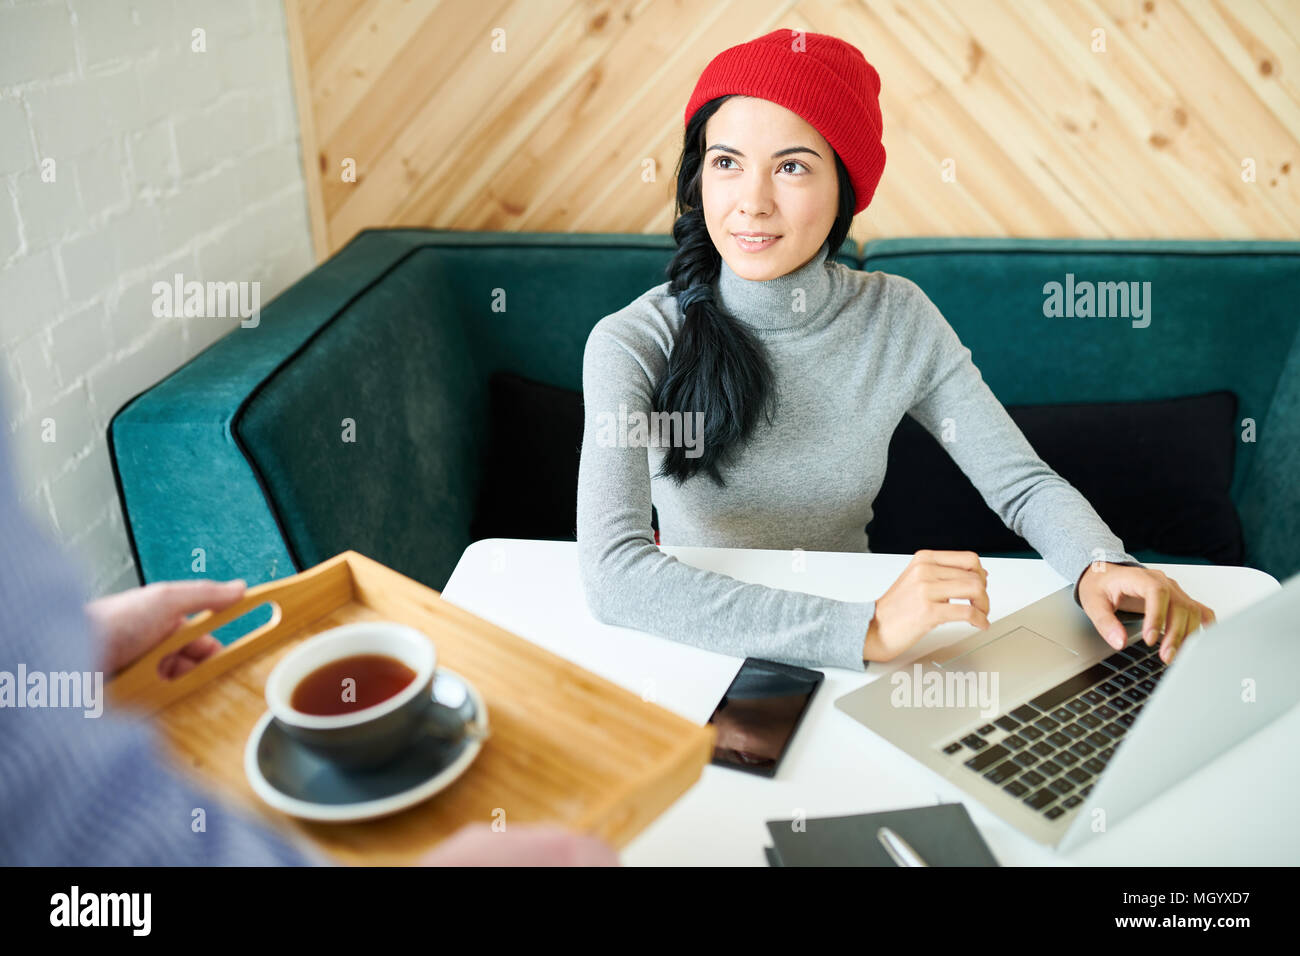 Pretty Woman Working in Cafe - Stock Image